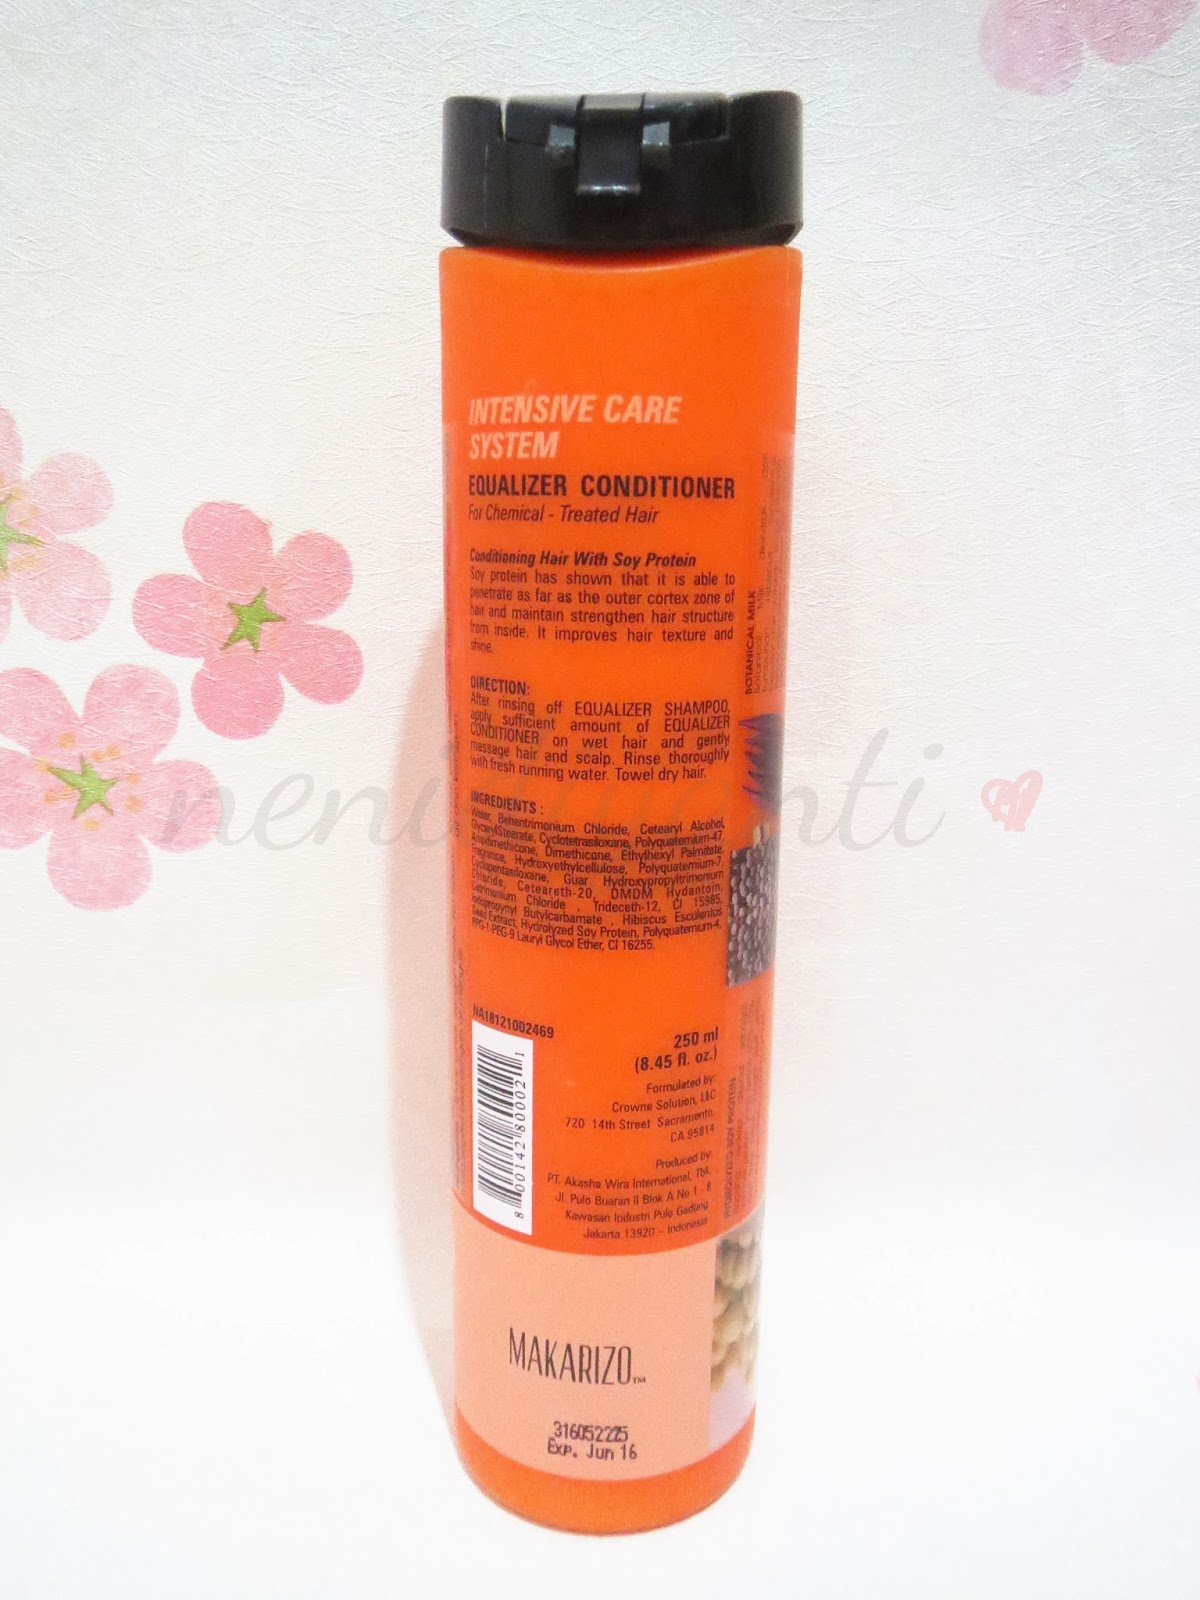 Kawaii Fuku T1 Shampoo And Conditioner Makarizo Texture 250ml On The Back Of Bottle You Can Find Short Description About Product How To Use Also Ingredients Its Written In English